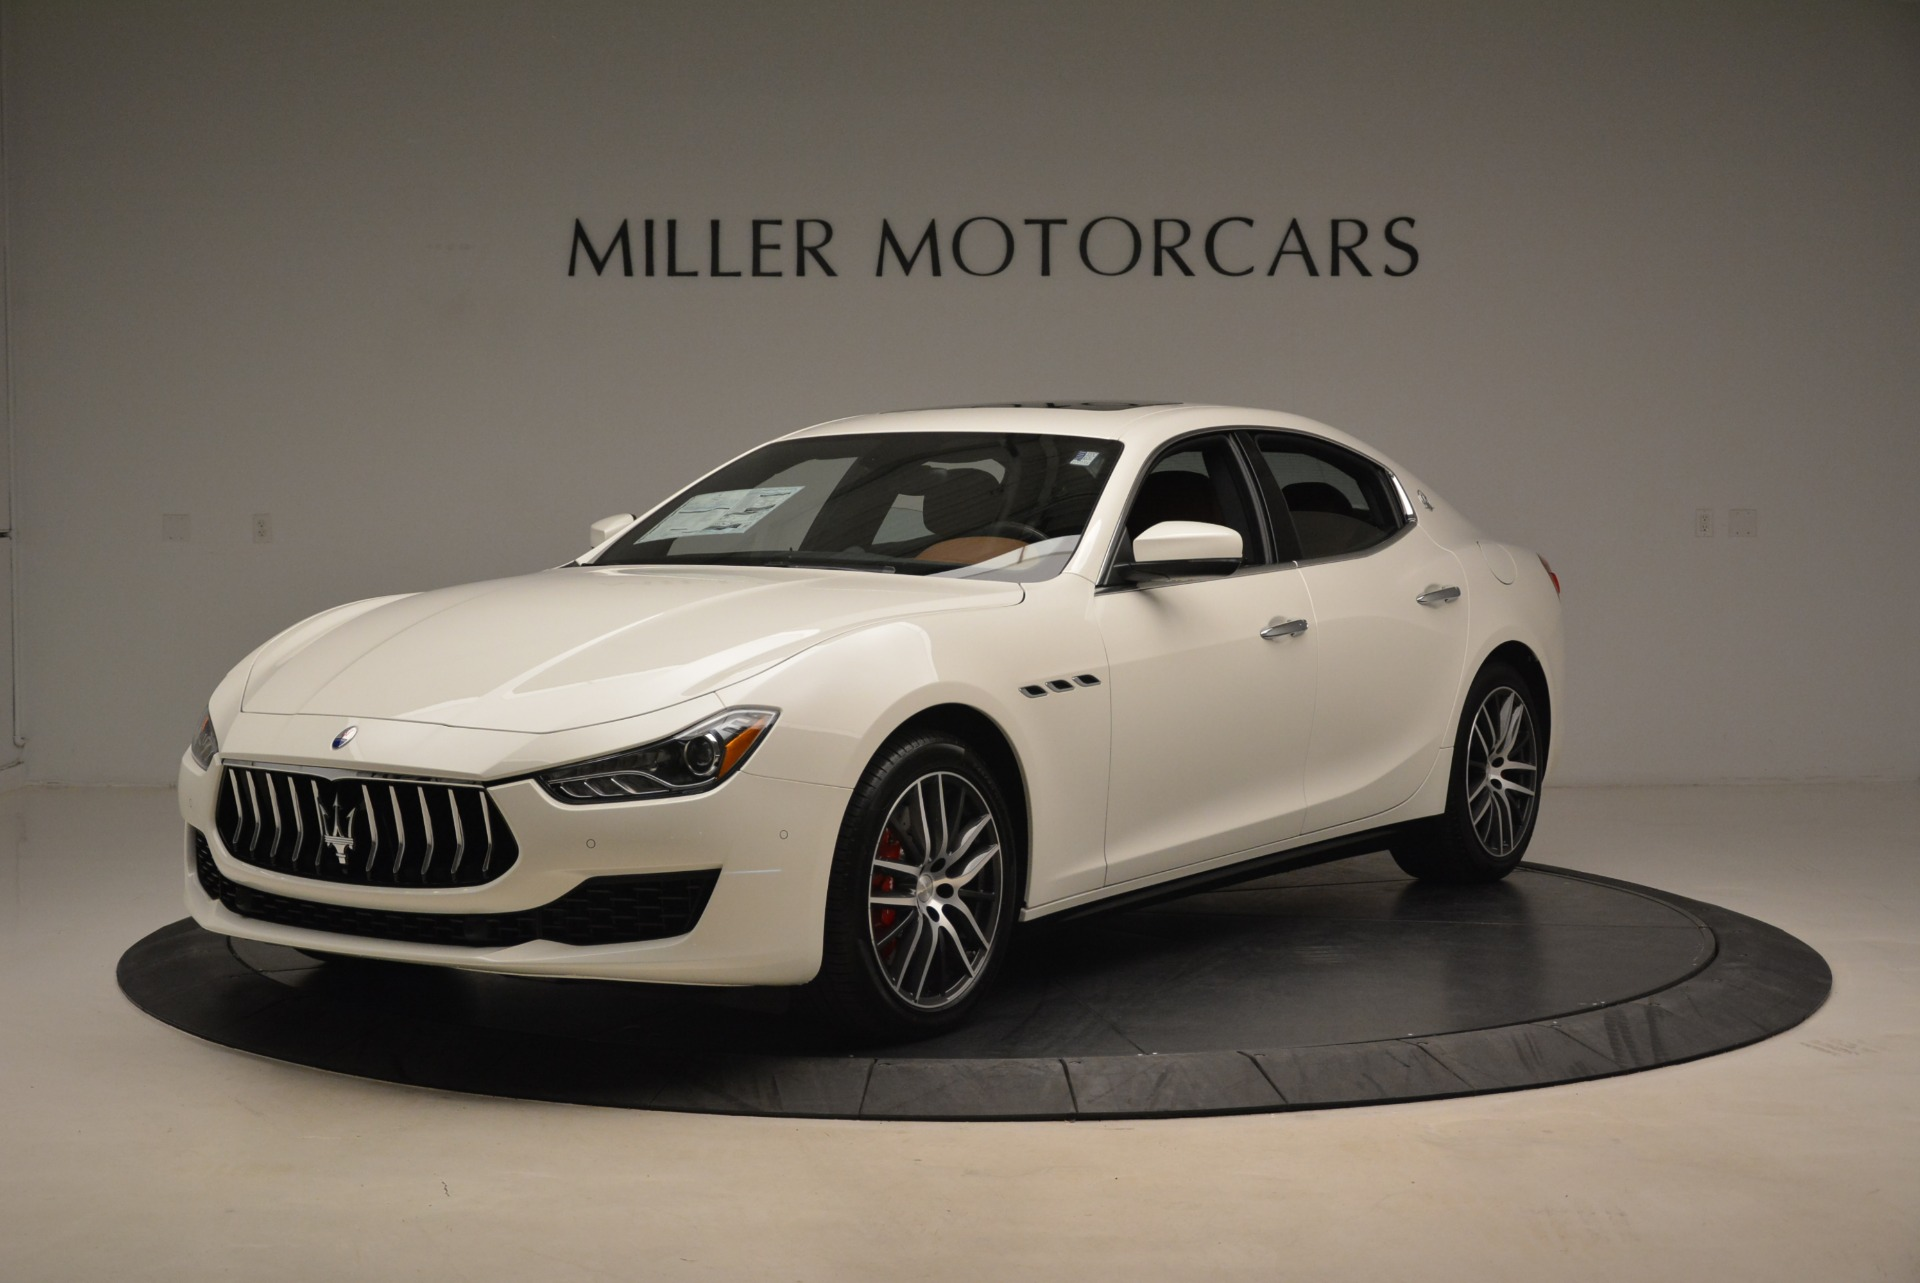 New 2018 Maserati Ghibli S Q4 For Sale In Greenwich, CT. Alfa Romeo of Greenwich, M2058 2074_main